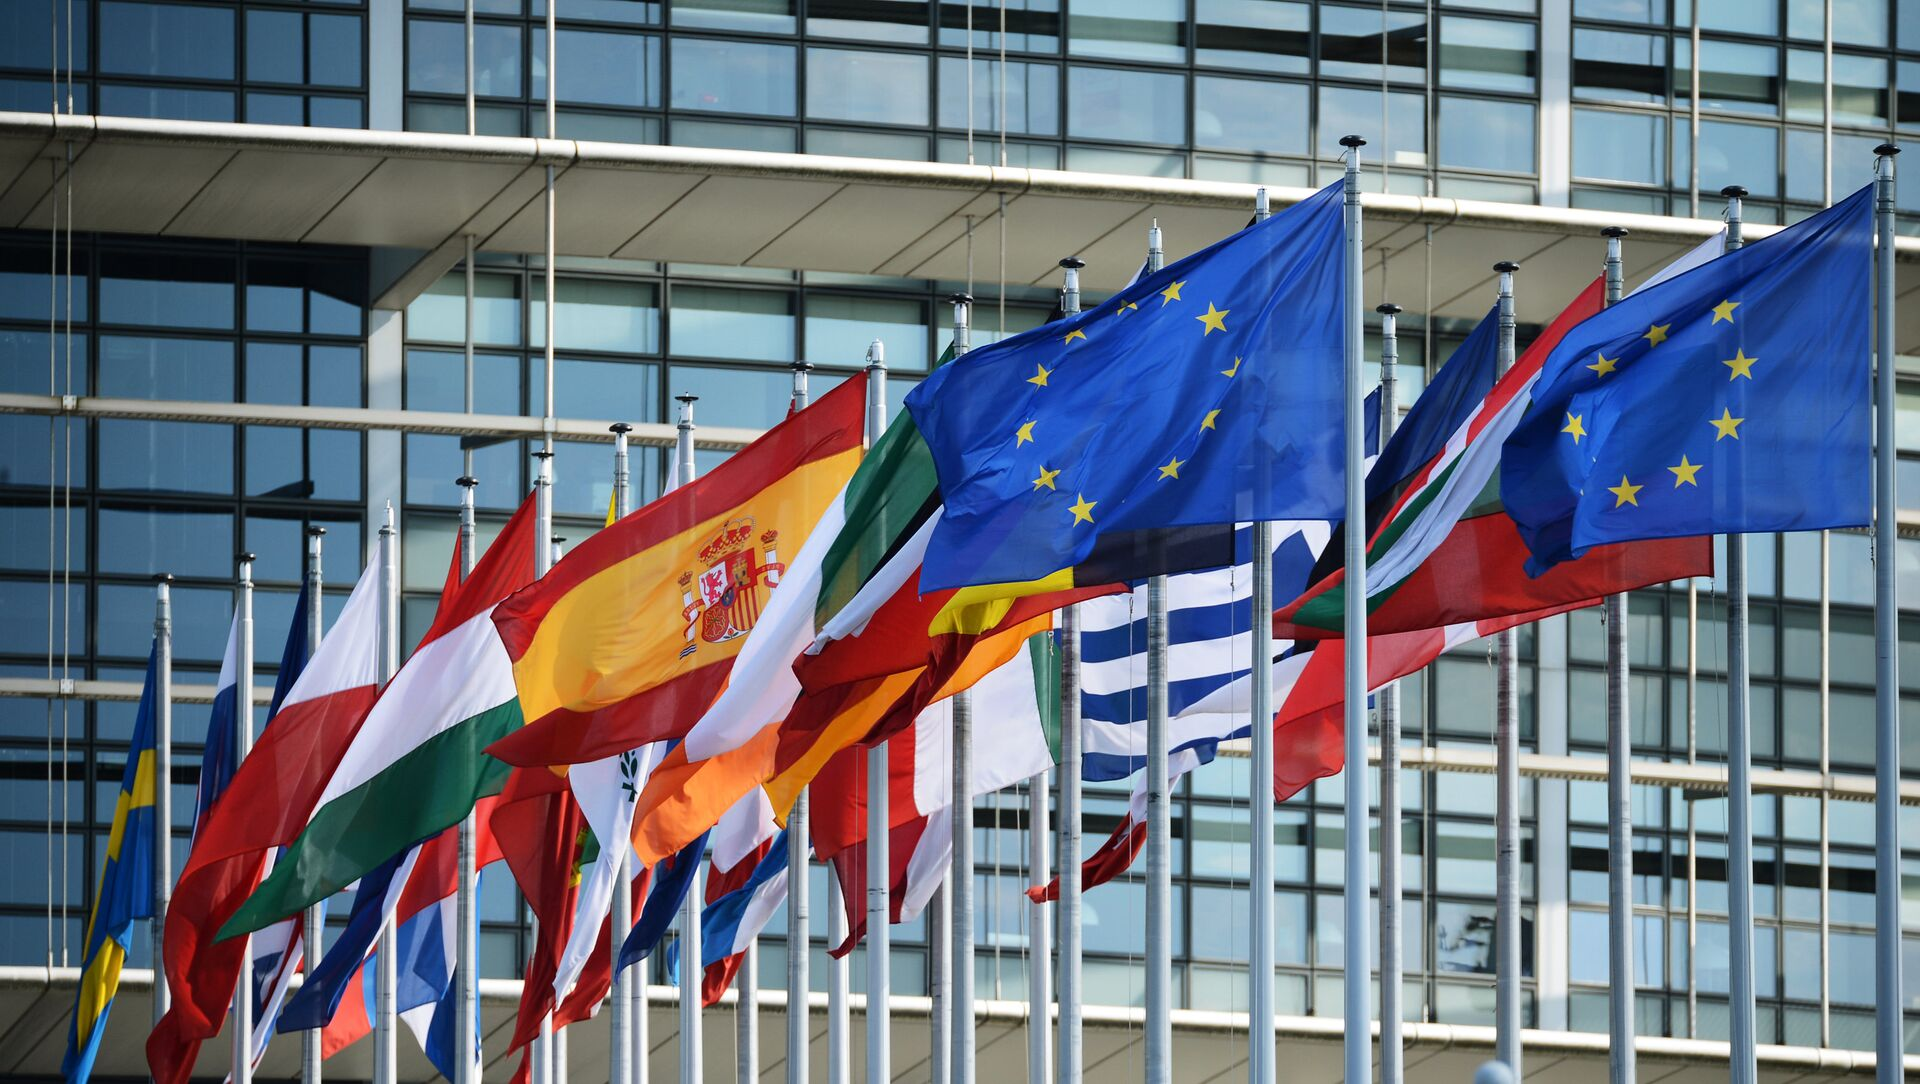 Flags outside the building of the European Parliament in Strasbourg - Sputnik International, 1920, 13.08.2021